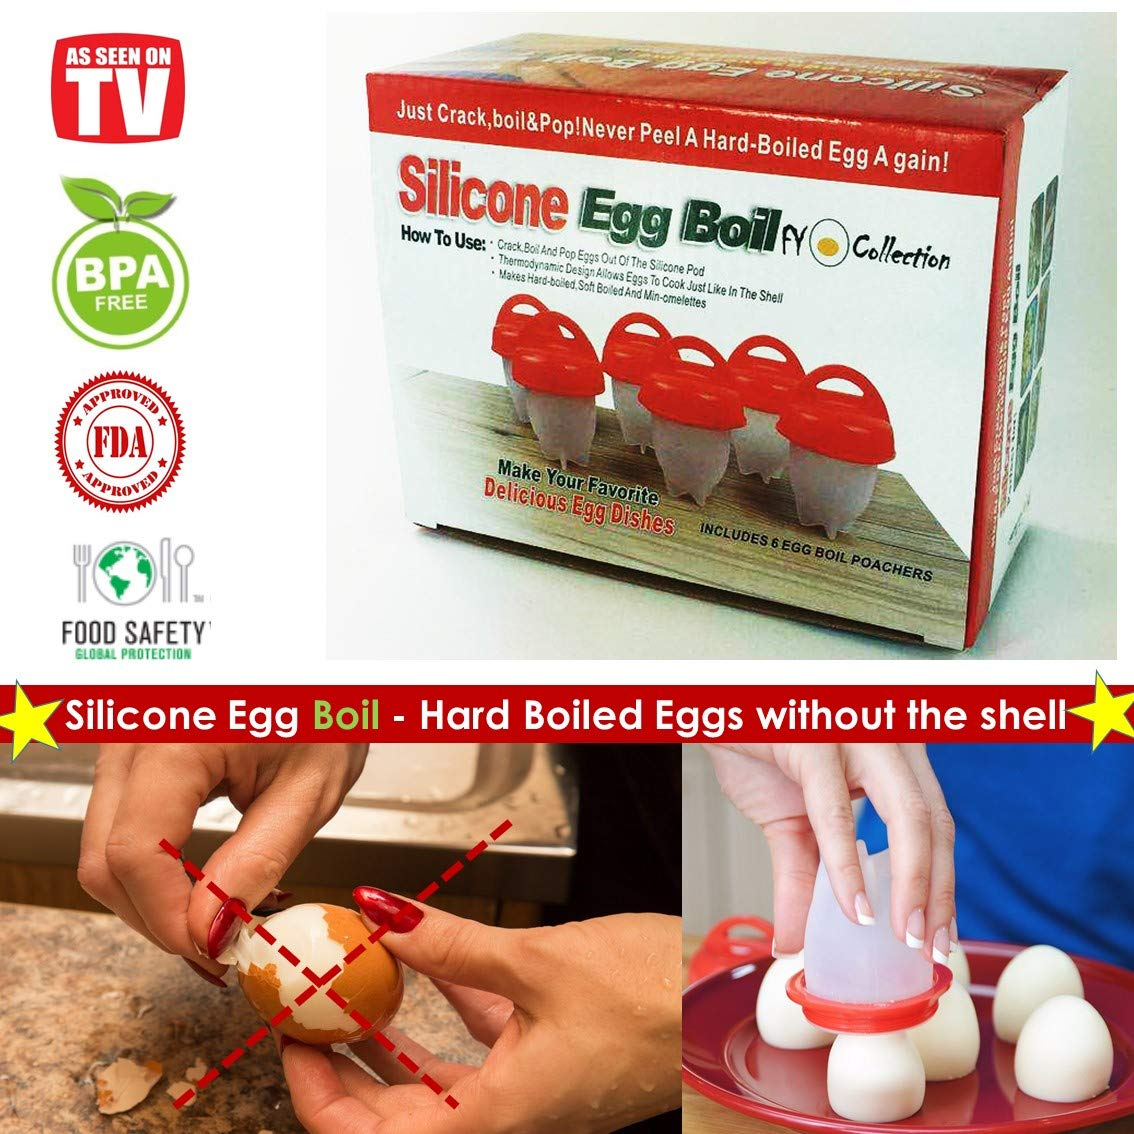 Egg cooker hard - boiled eggs without the shell as seen on TV, Hard Egg cooker set of 6 non-stick silicone egg cups, poached eggs maker